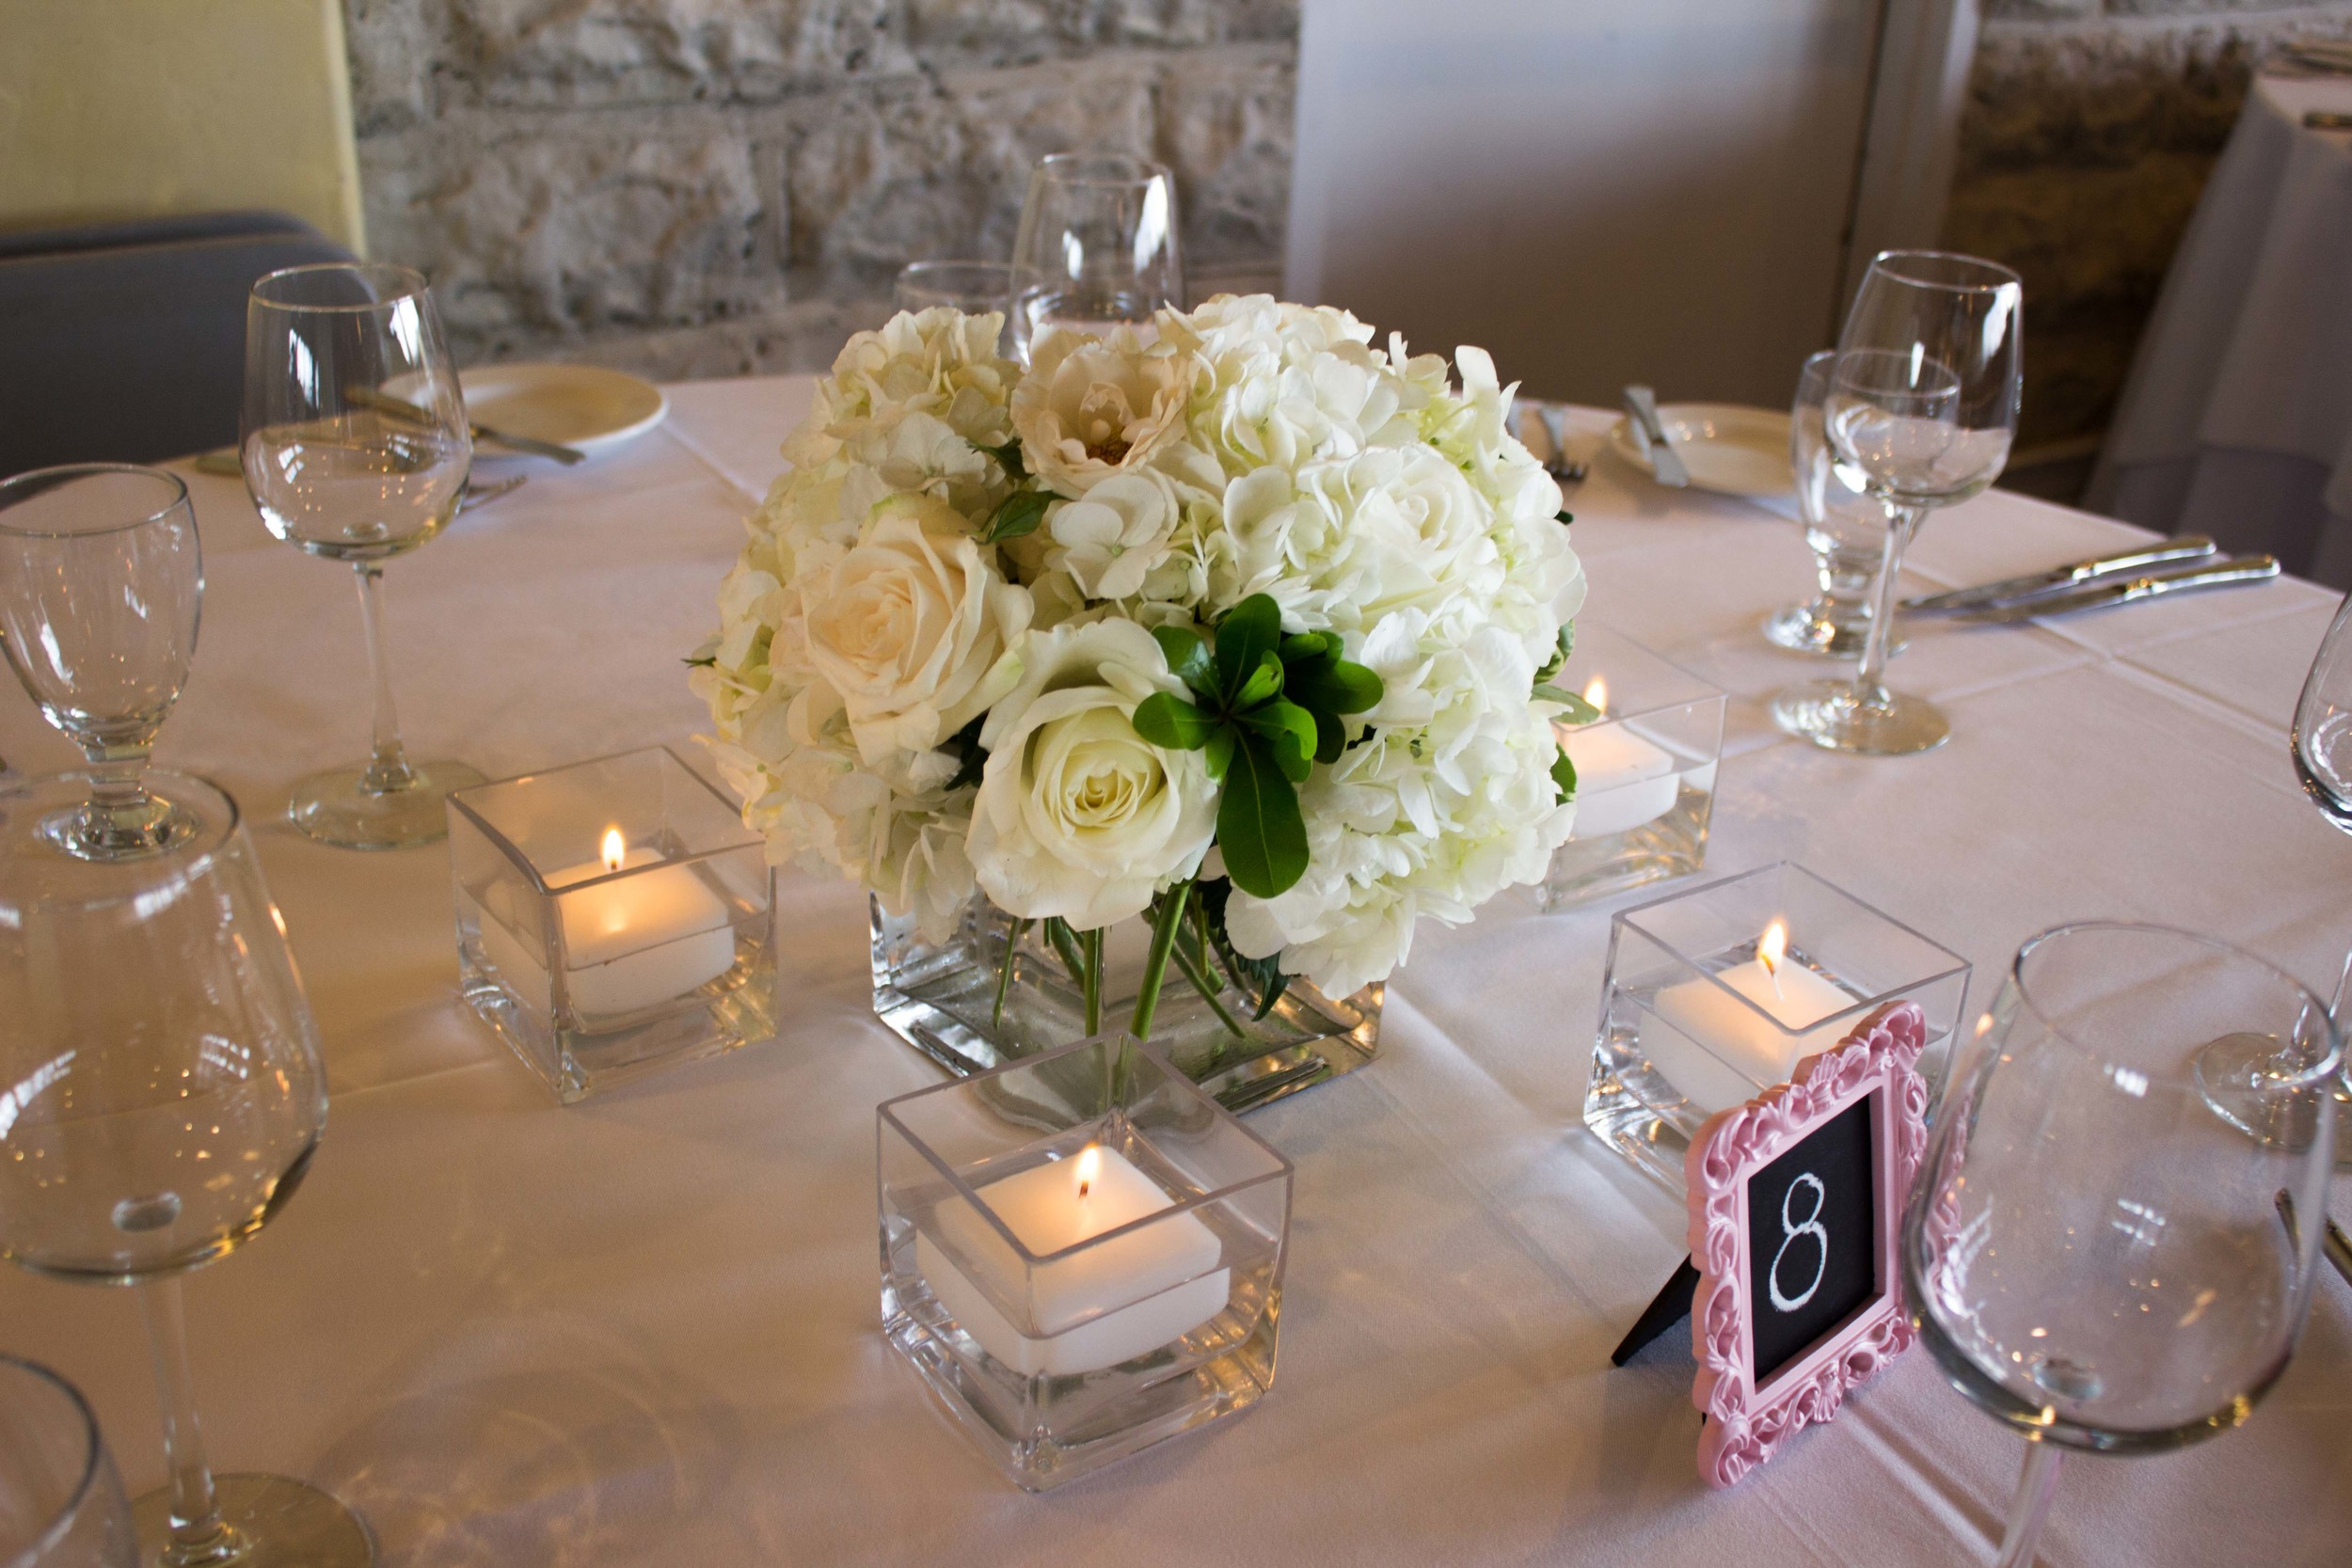 Centrepieces for the guest tables.